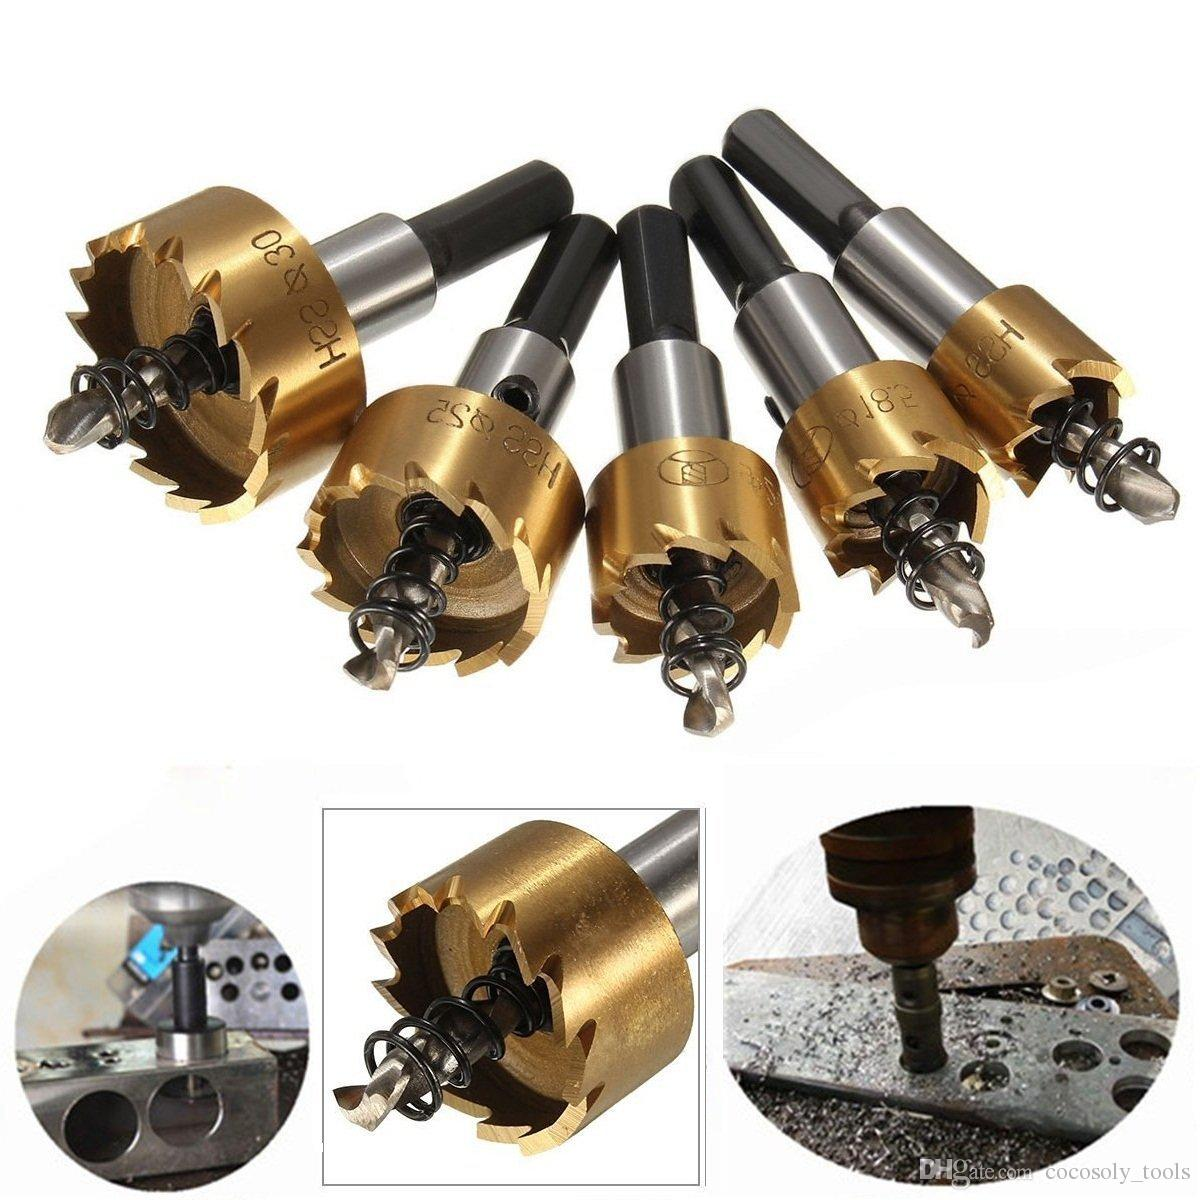 Power Drill Tools Set High Speed Steel HSS Drill Bit Hole Saw Set Stainless Steel Metal Alloy Kit 16mm/18mm/20mm/25mm/30mm